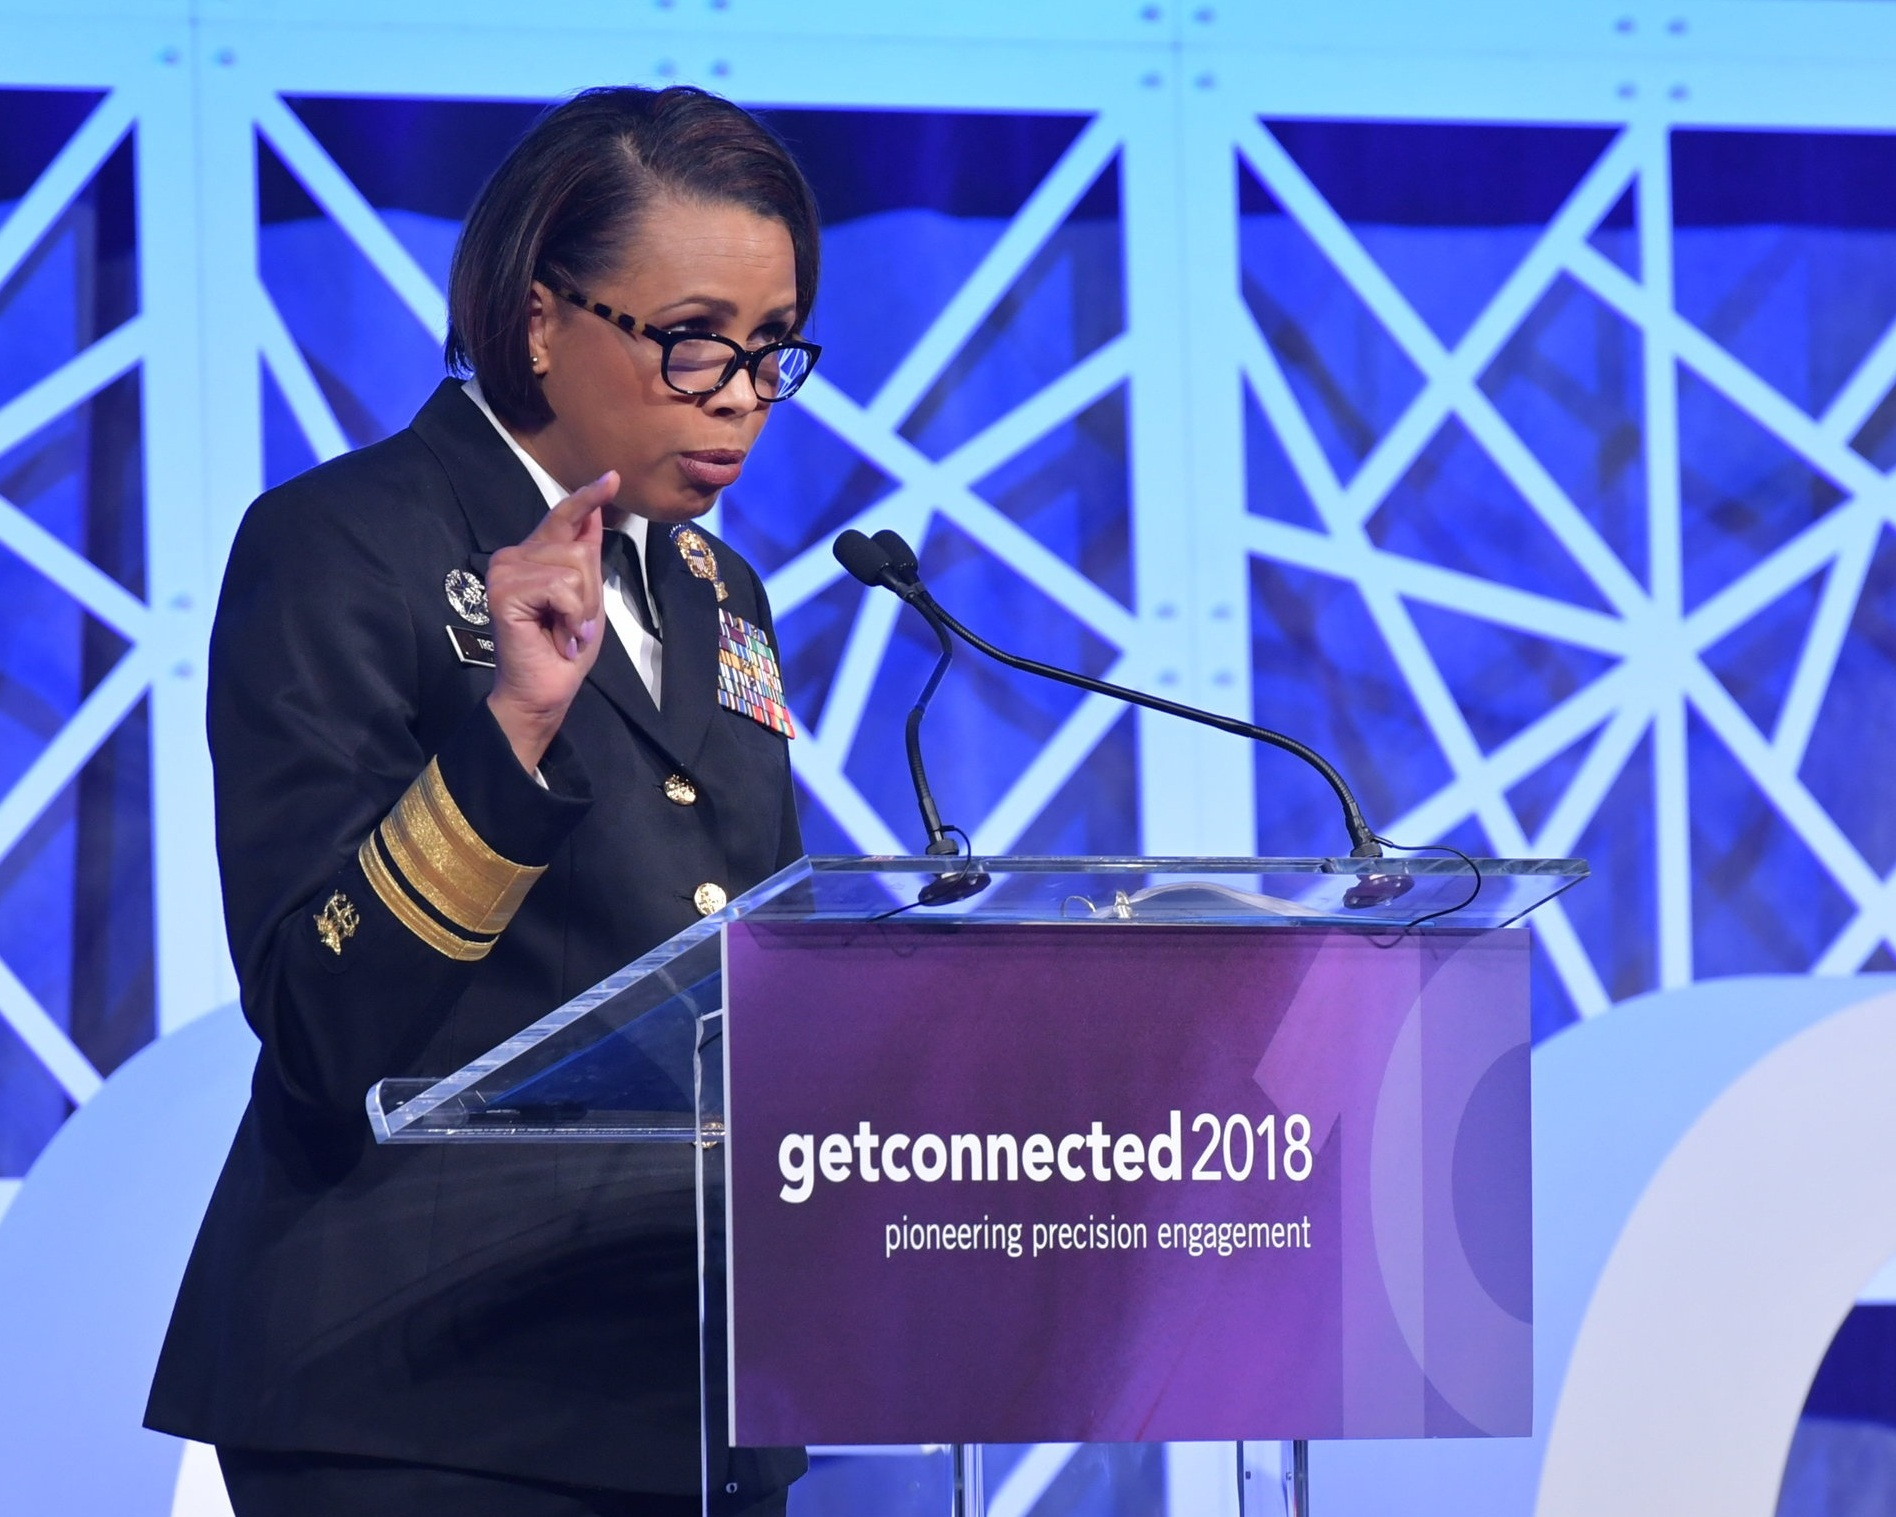 RADM Sylvia Trent-Adams Keynote - Improving the Nation's Health: An Examination of Current Trends & Opportunities